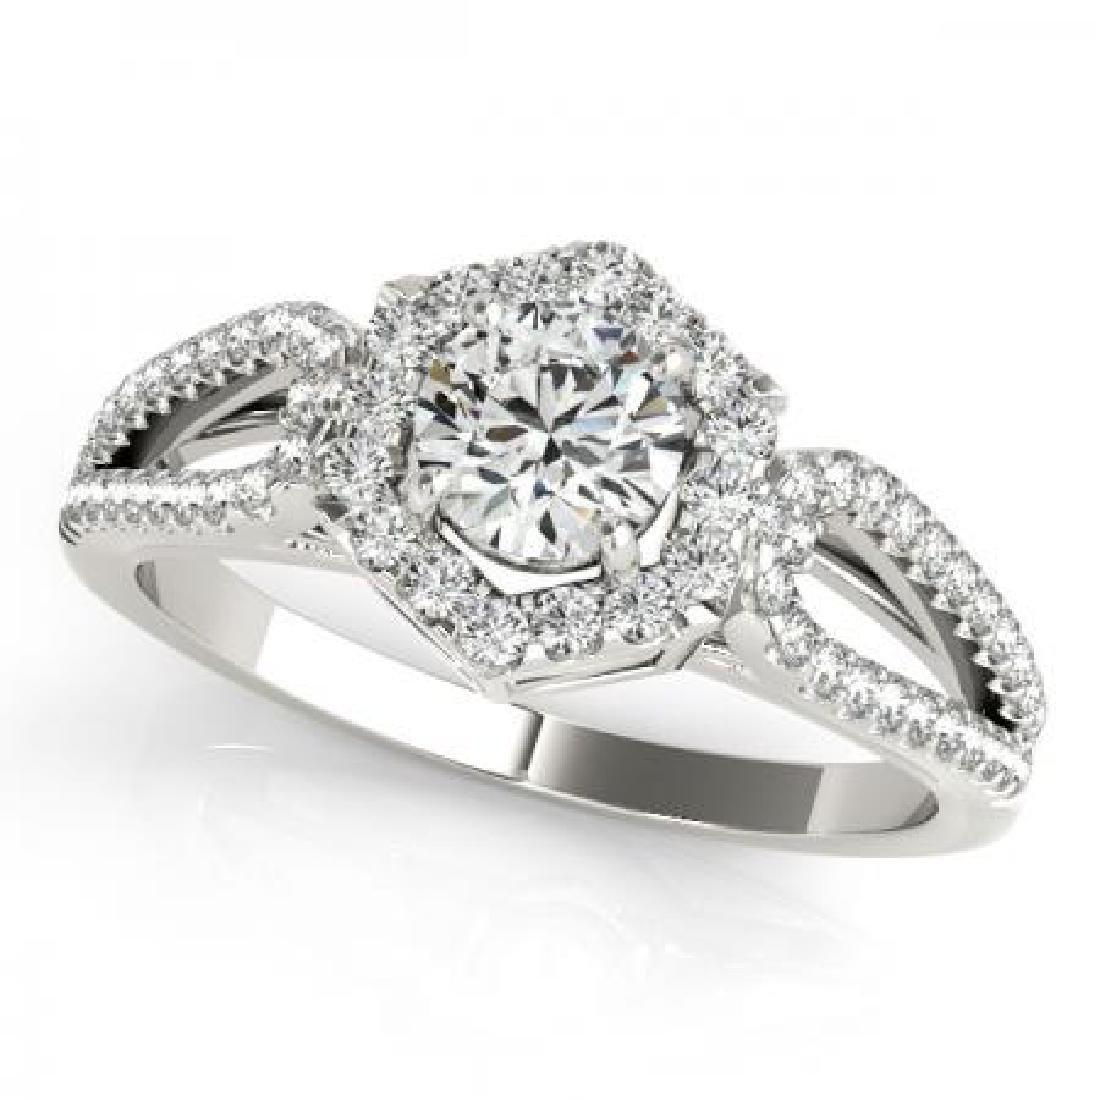 CERTIFIED PLATINUM 1.38 CTW G-H/VS-SI1 DIAMOND HALO ENG